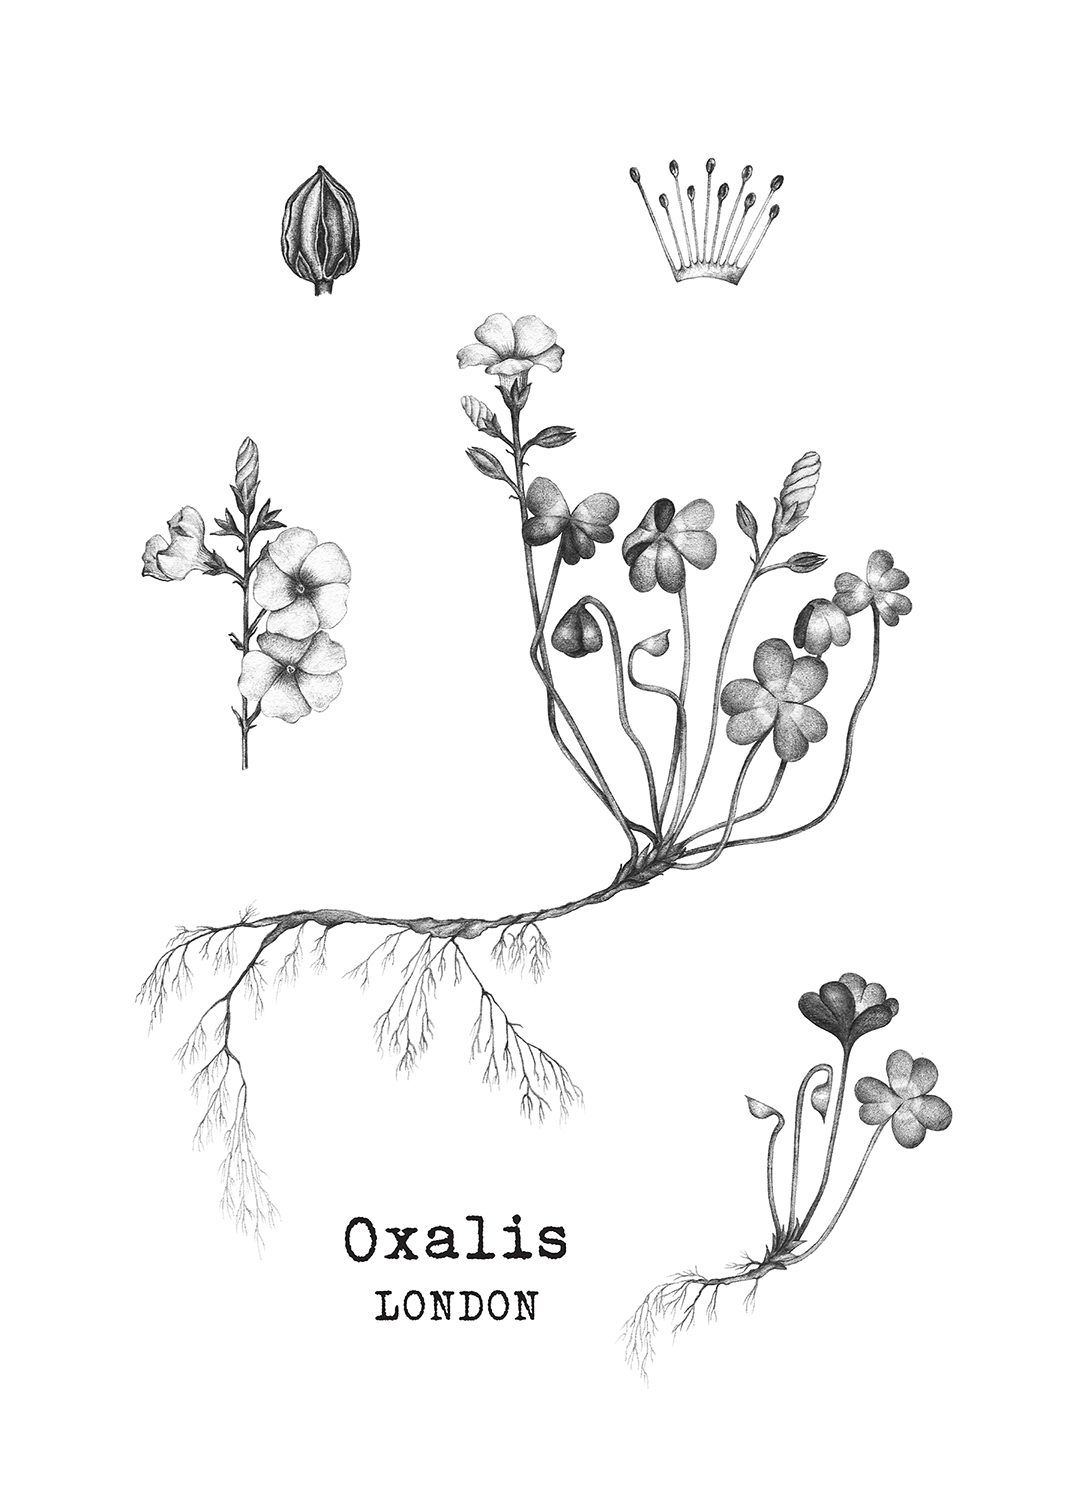 A5 page of botanicals drawn for a new restaurant  Oxalis London .